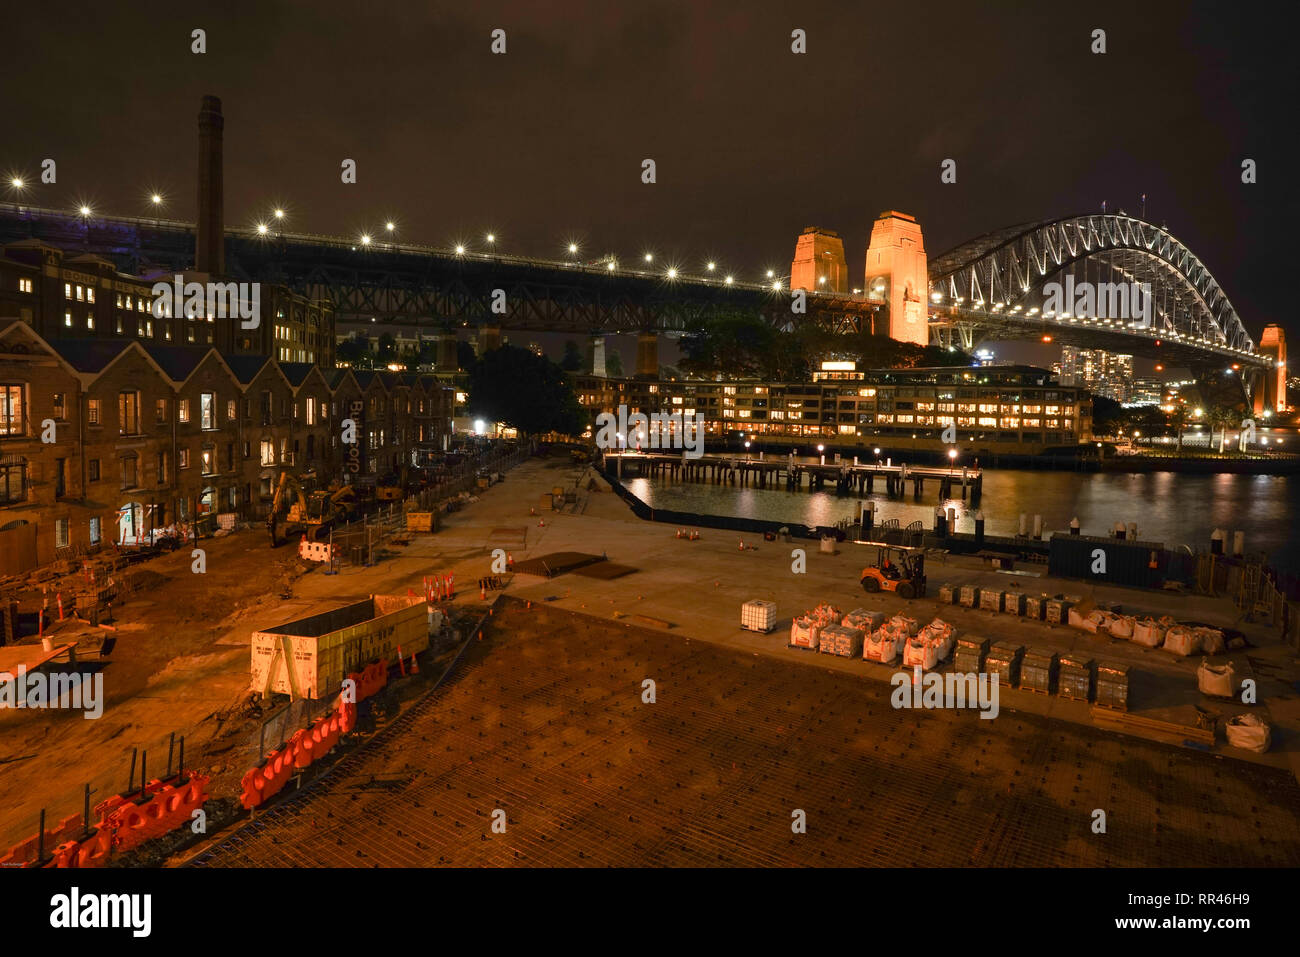 Sydney Harbour Bridge at night. The harbour front is undergoing renovation. - Stock Image